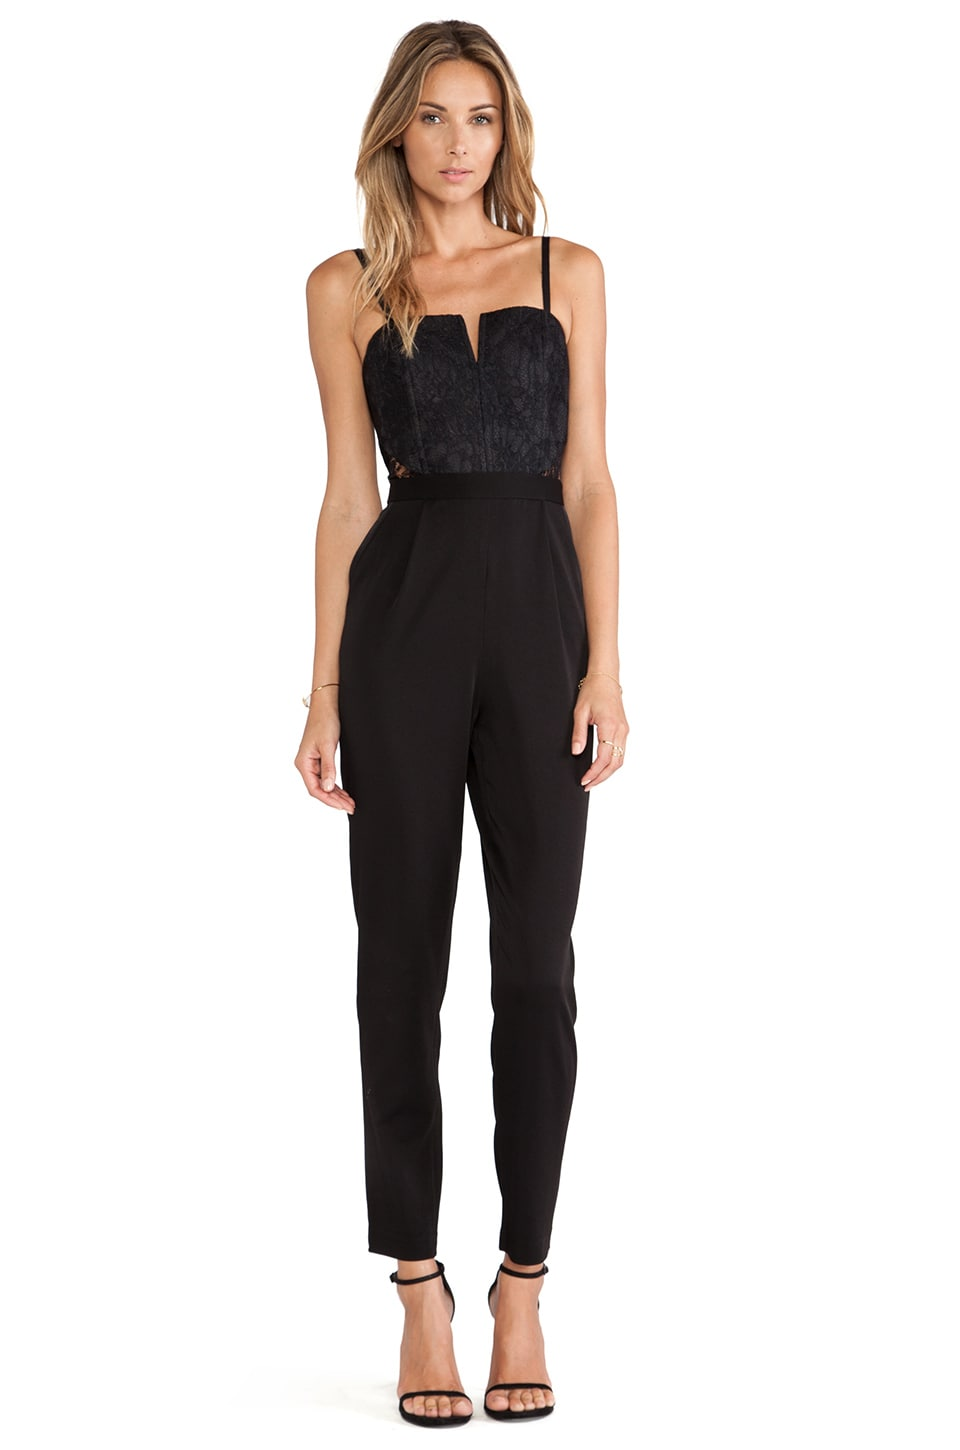 Alice + Olivia Structured Bustier Jumpsuit in Black